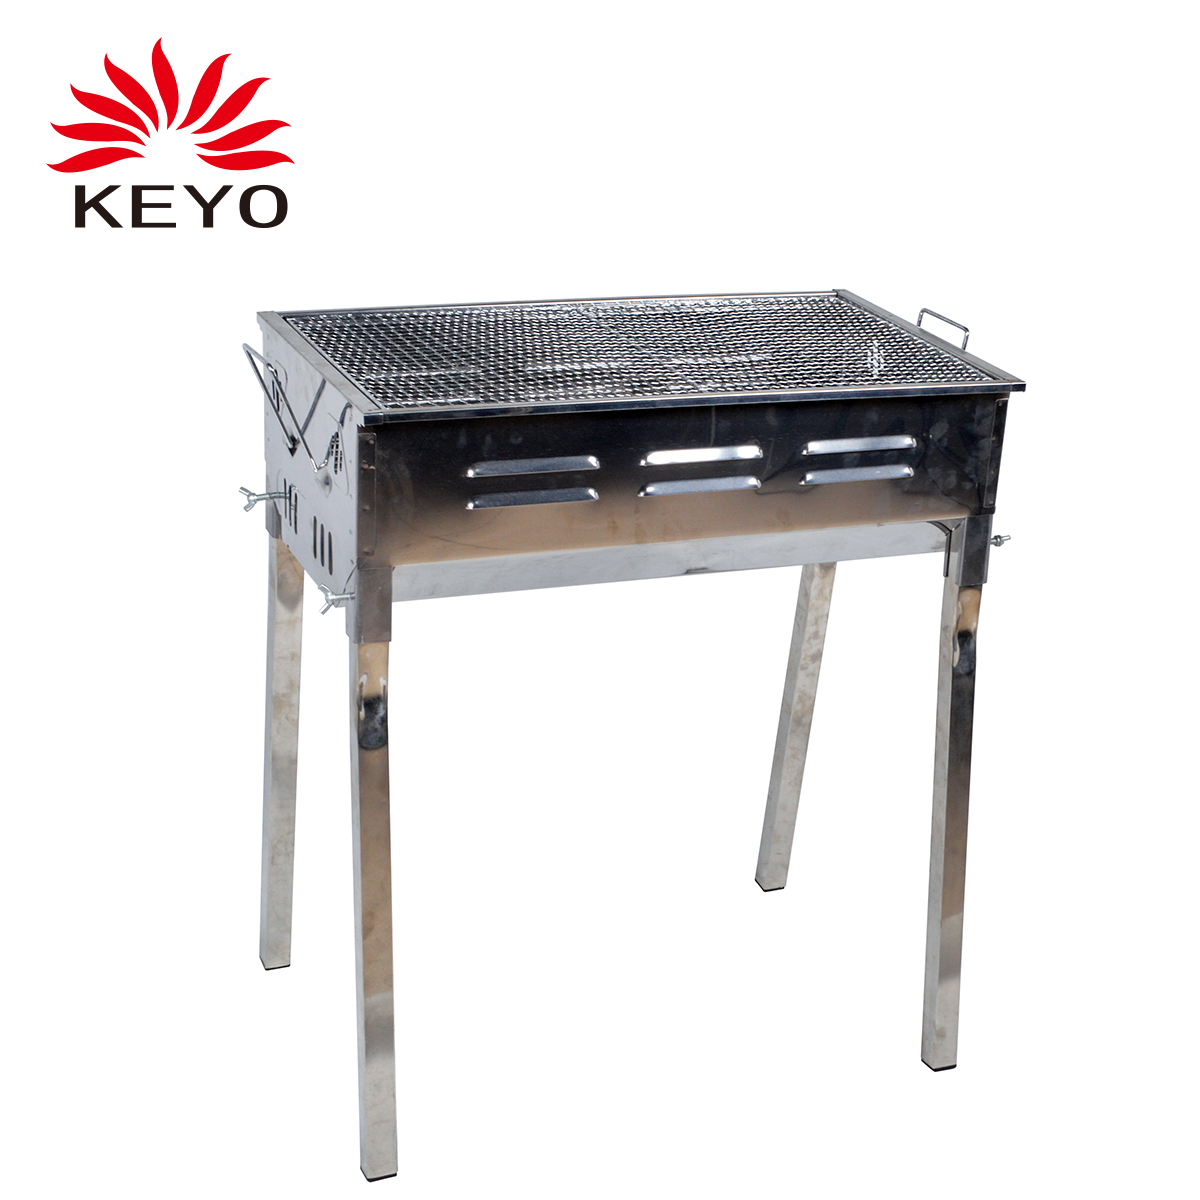 KY1811BS Charcoal grill